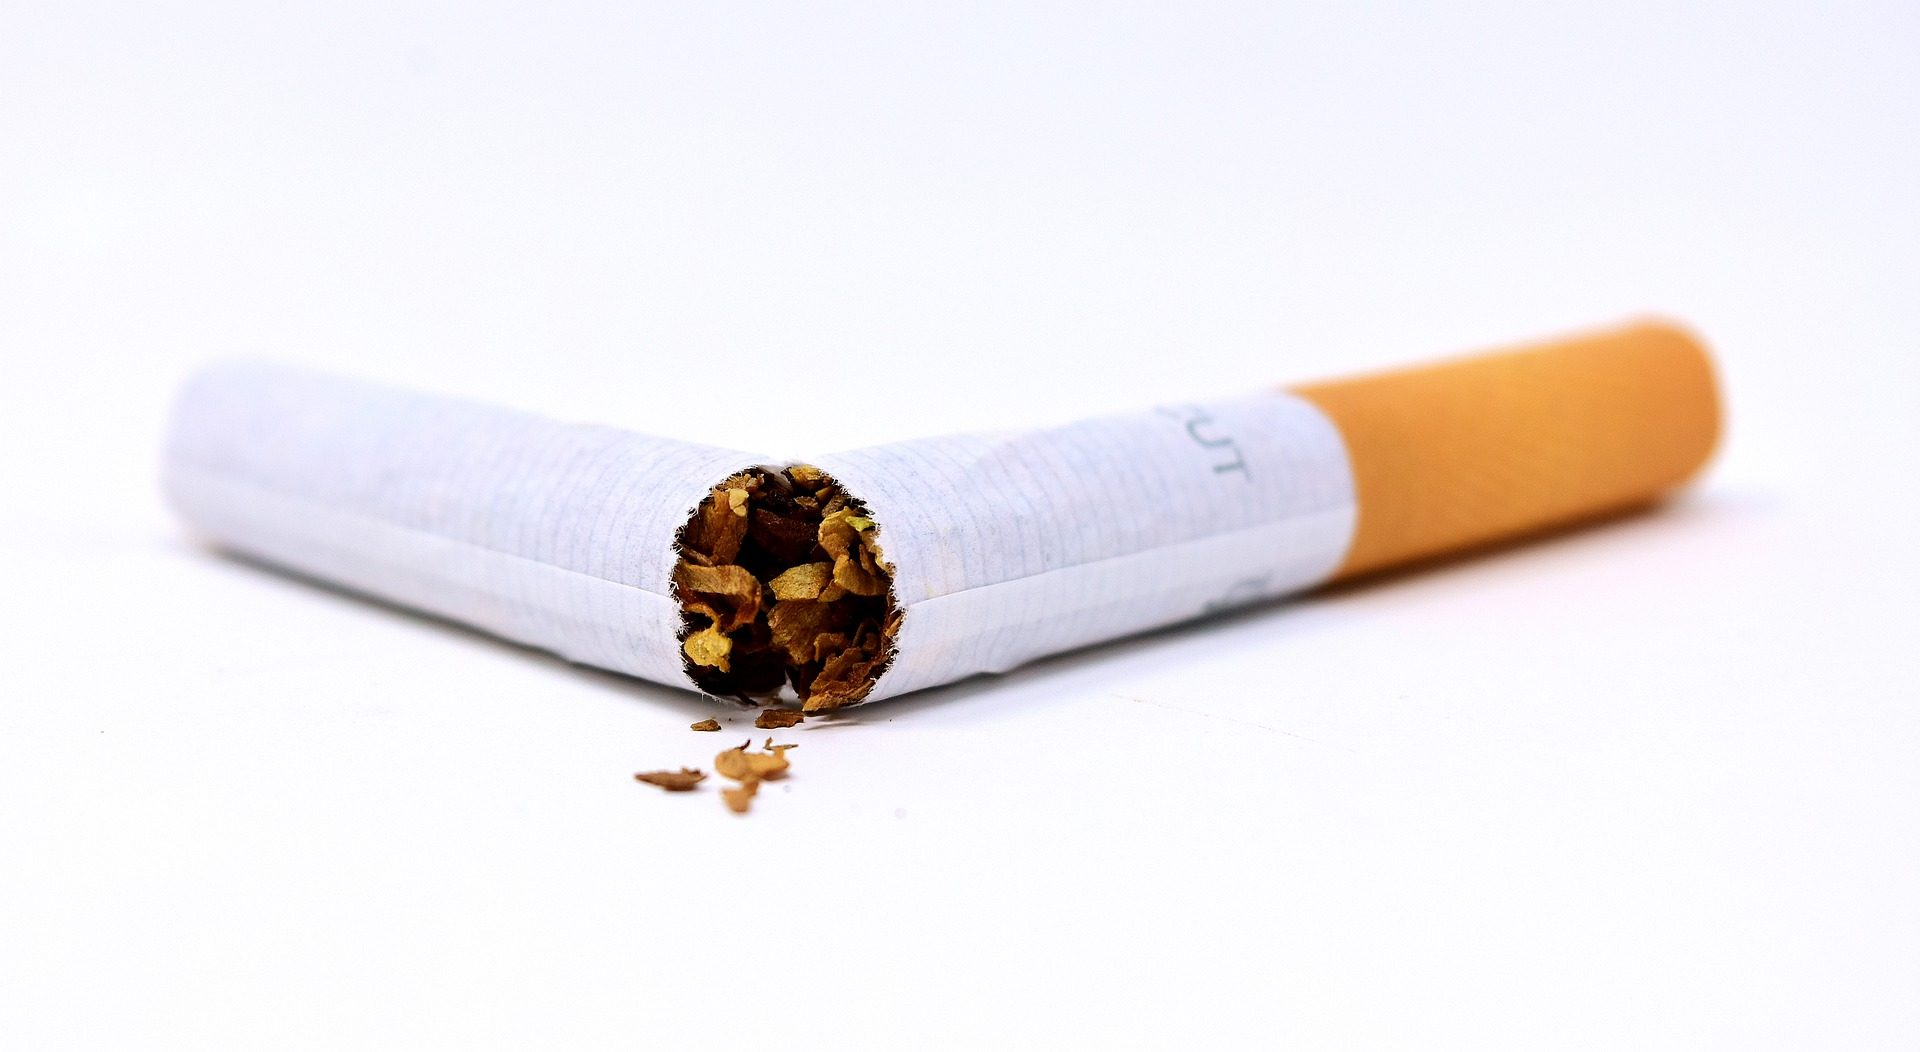 FDA moving lower nicotine in cigarettes [watch]